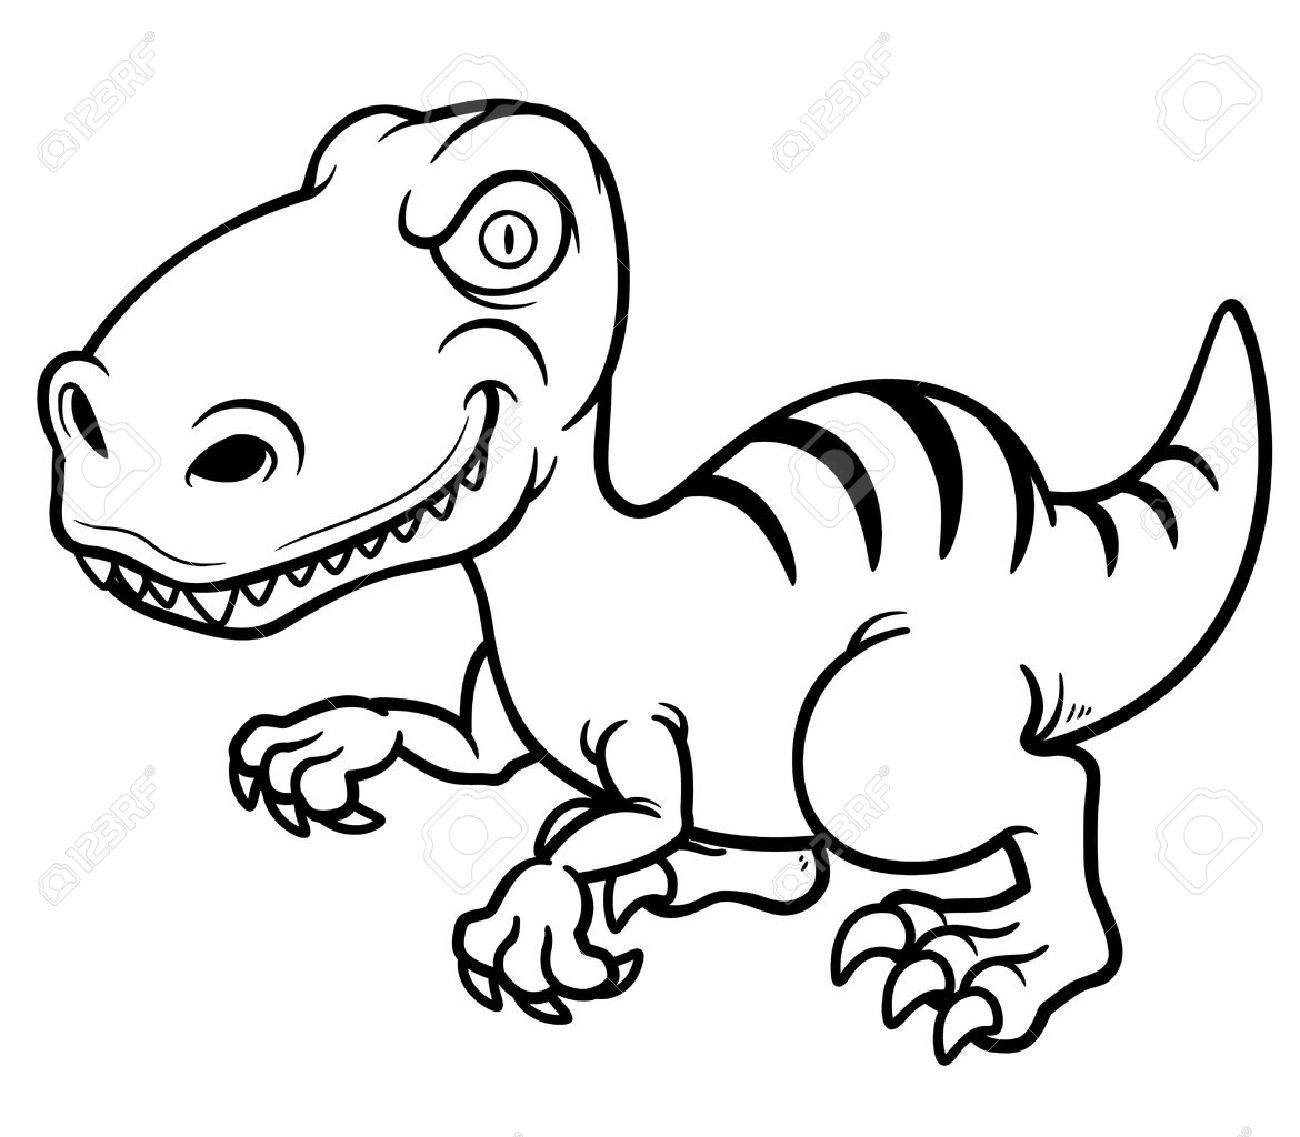 Vector Illustration Of Cartoon Dinosaur - Coloring Book Royalty Free ...